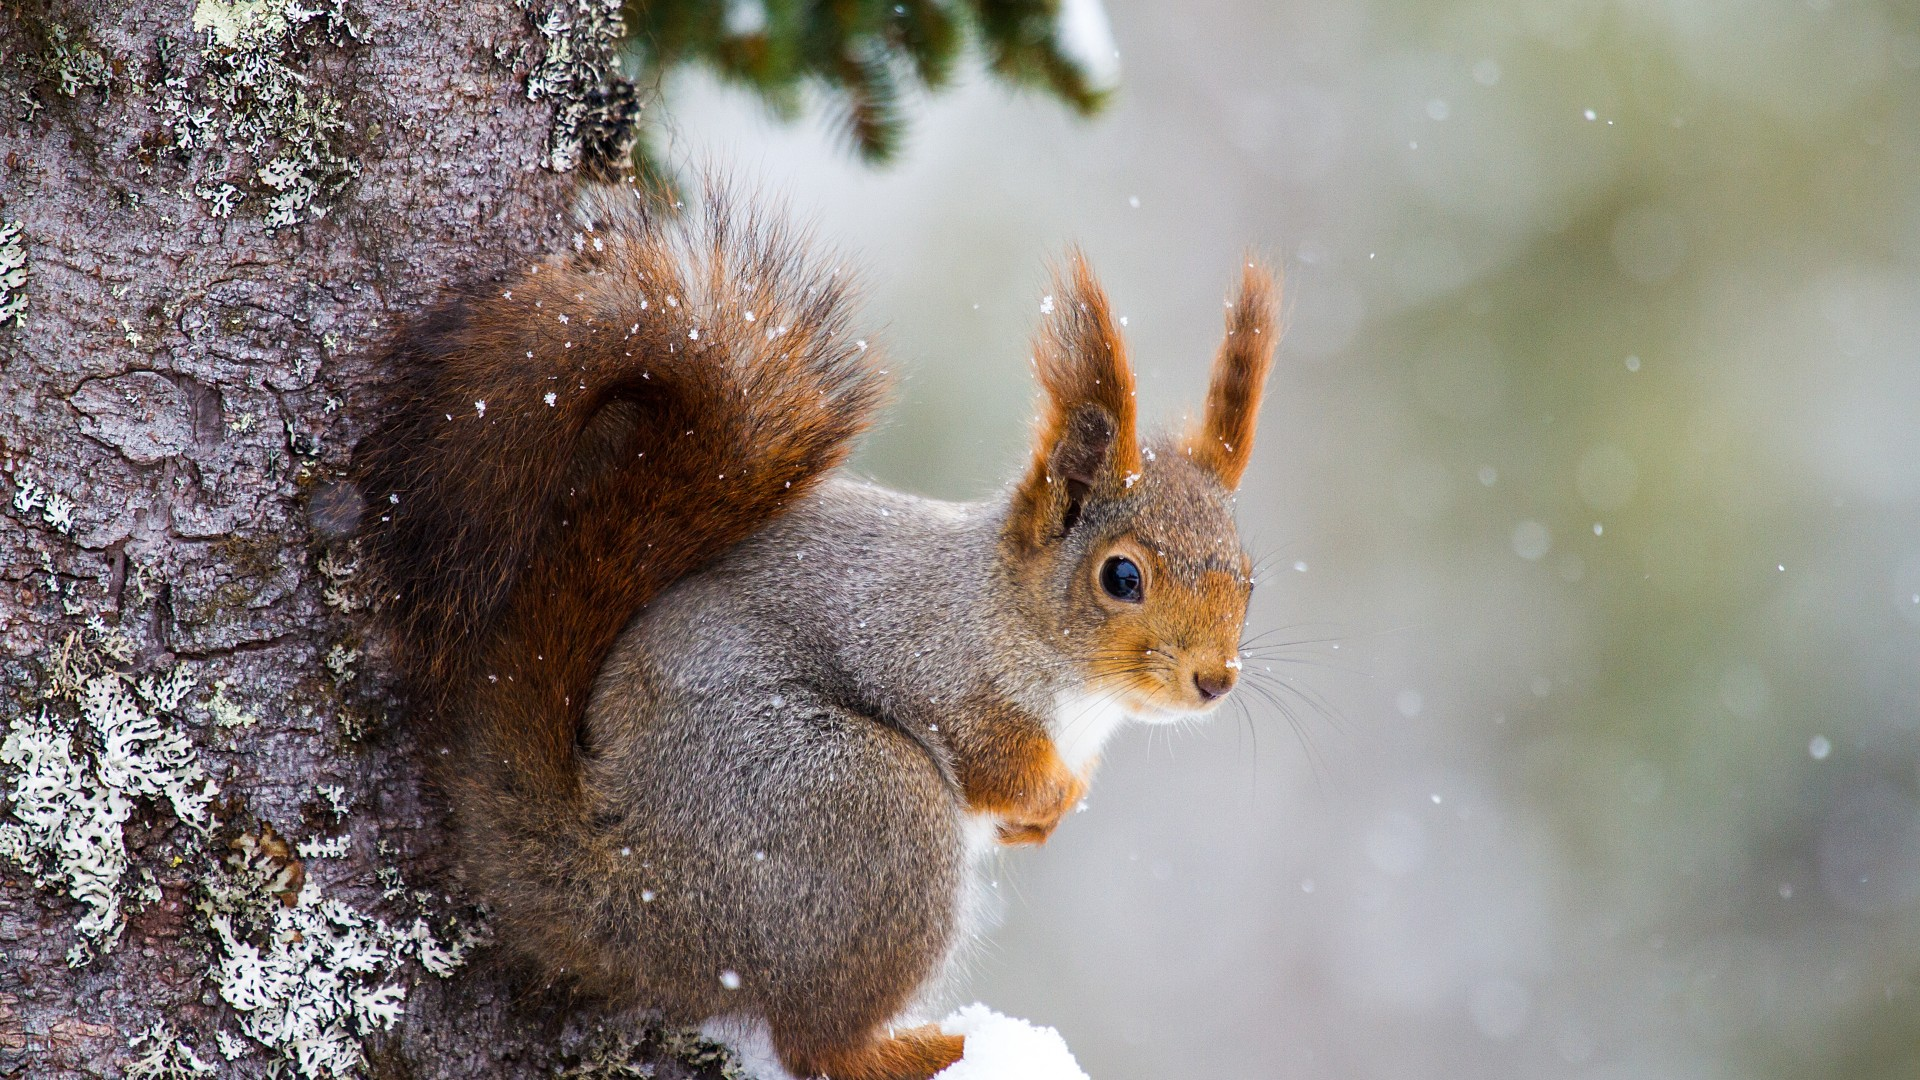 Cute Pets Wallpapers Hd Wallpaper Squirrel Cute Animals Winter 5k Animals 17350